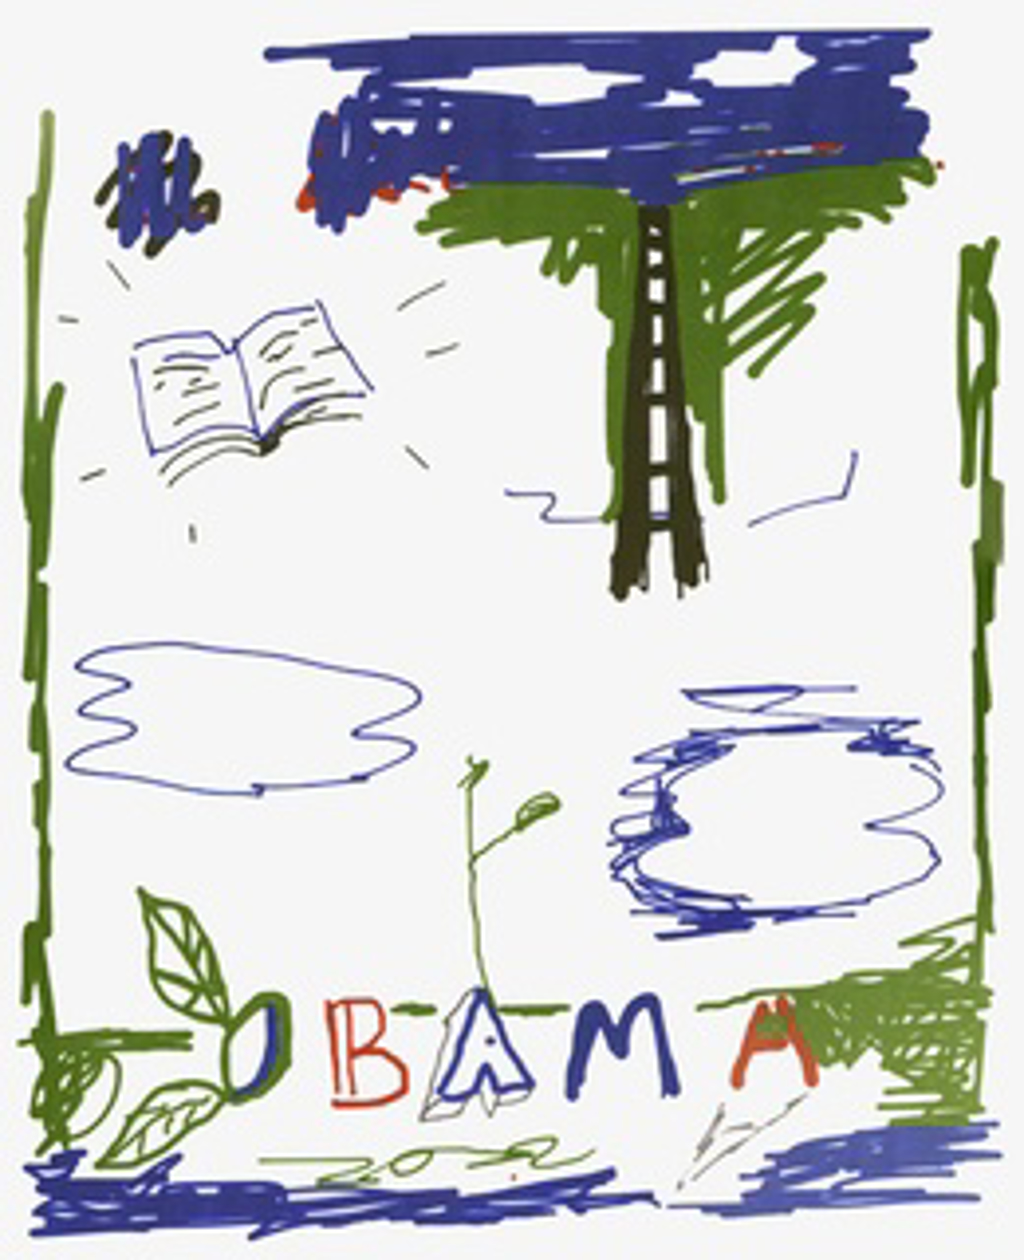 Obama by Robert Gober